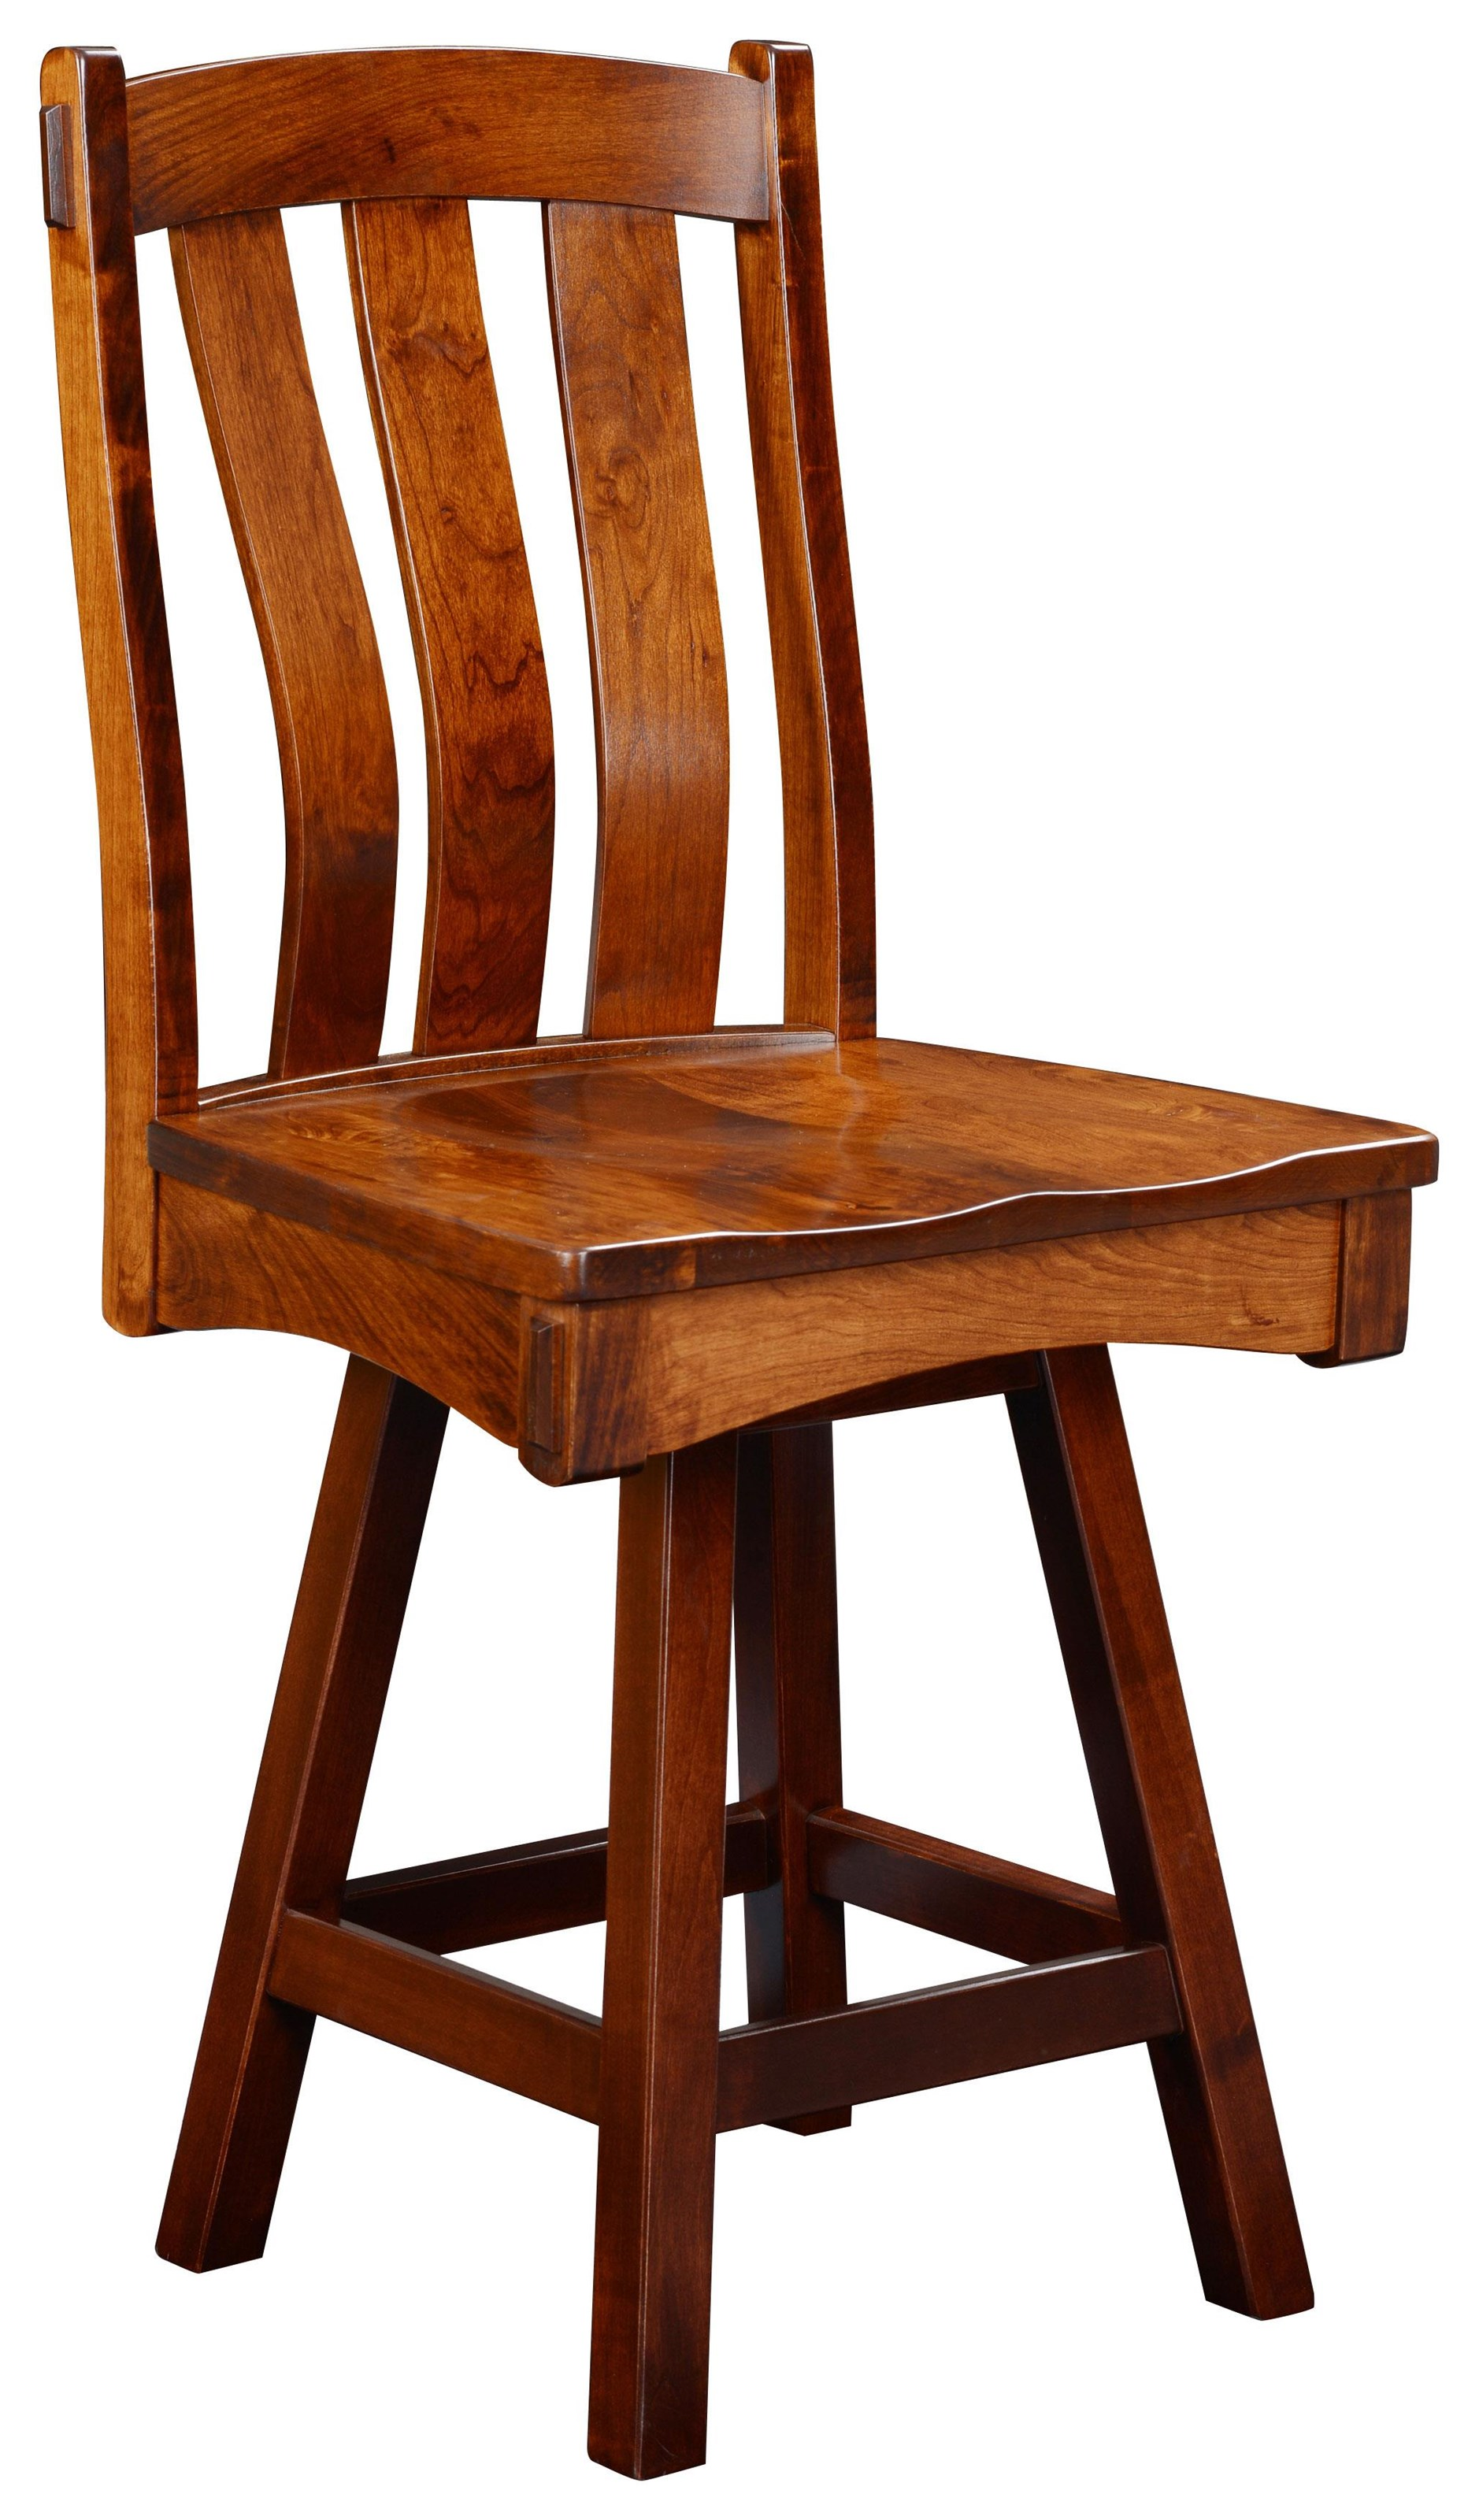 """Monarch 24"""" Swivel Stool by Wengerd Wood Products at Wayside Furniture"""